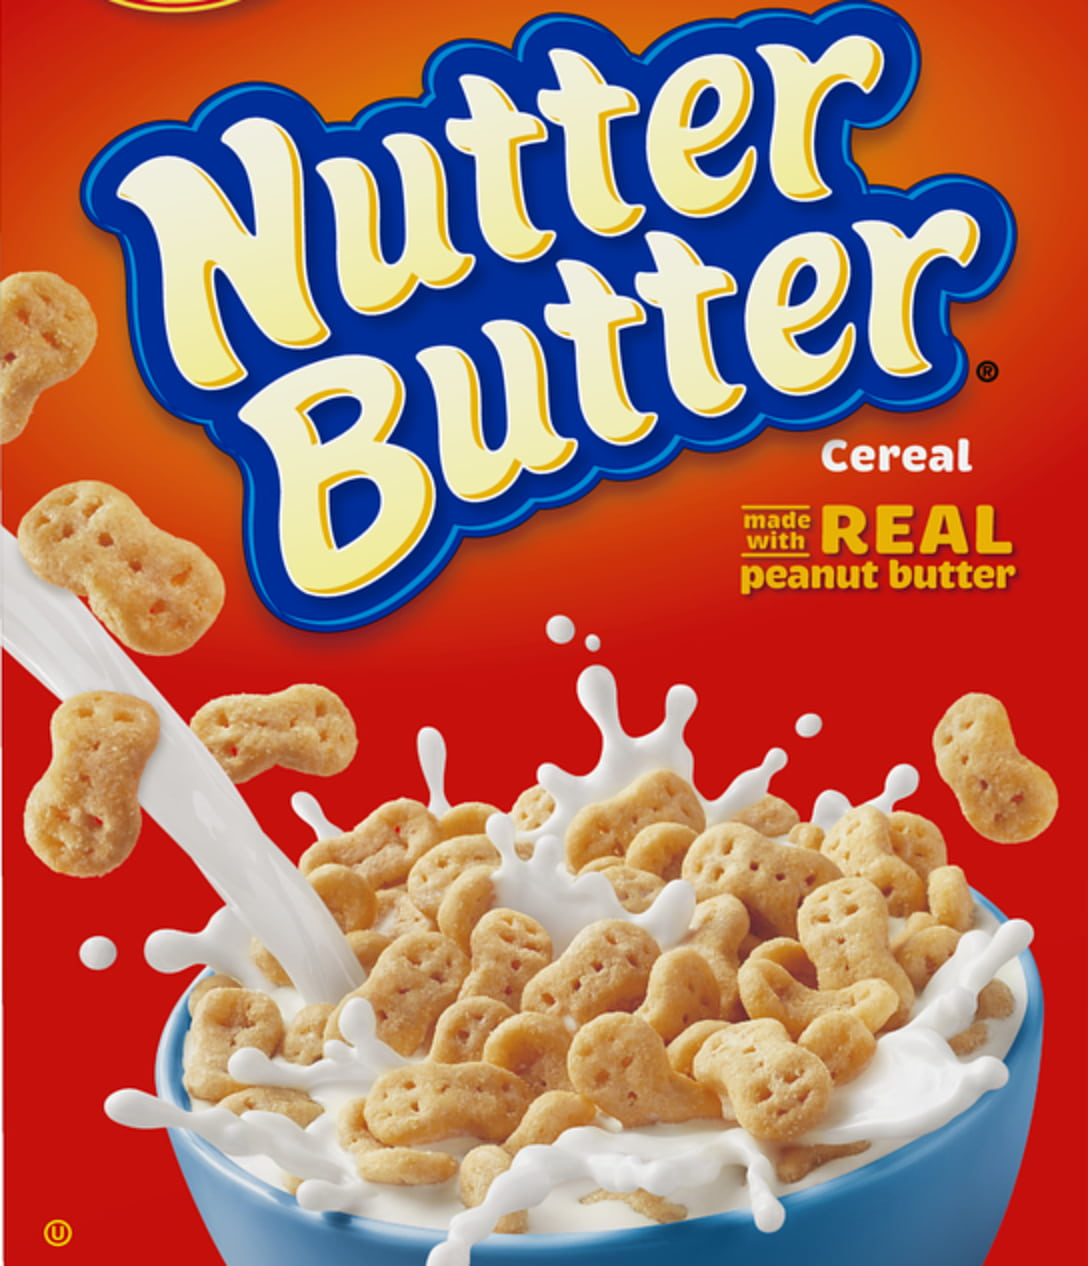 Great Nutter Butter Cereal Are Both Coming To Walmart This Chips Ahoy Cereal Upc Chips Ahoy Cereal Vegan Nutter Butter Cereal Chips nice food Chips Ahoy Cereal